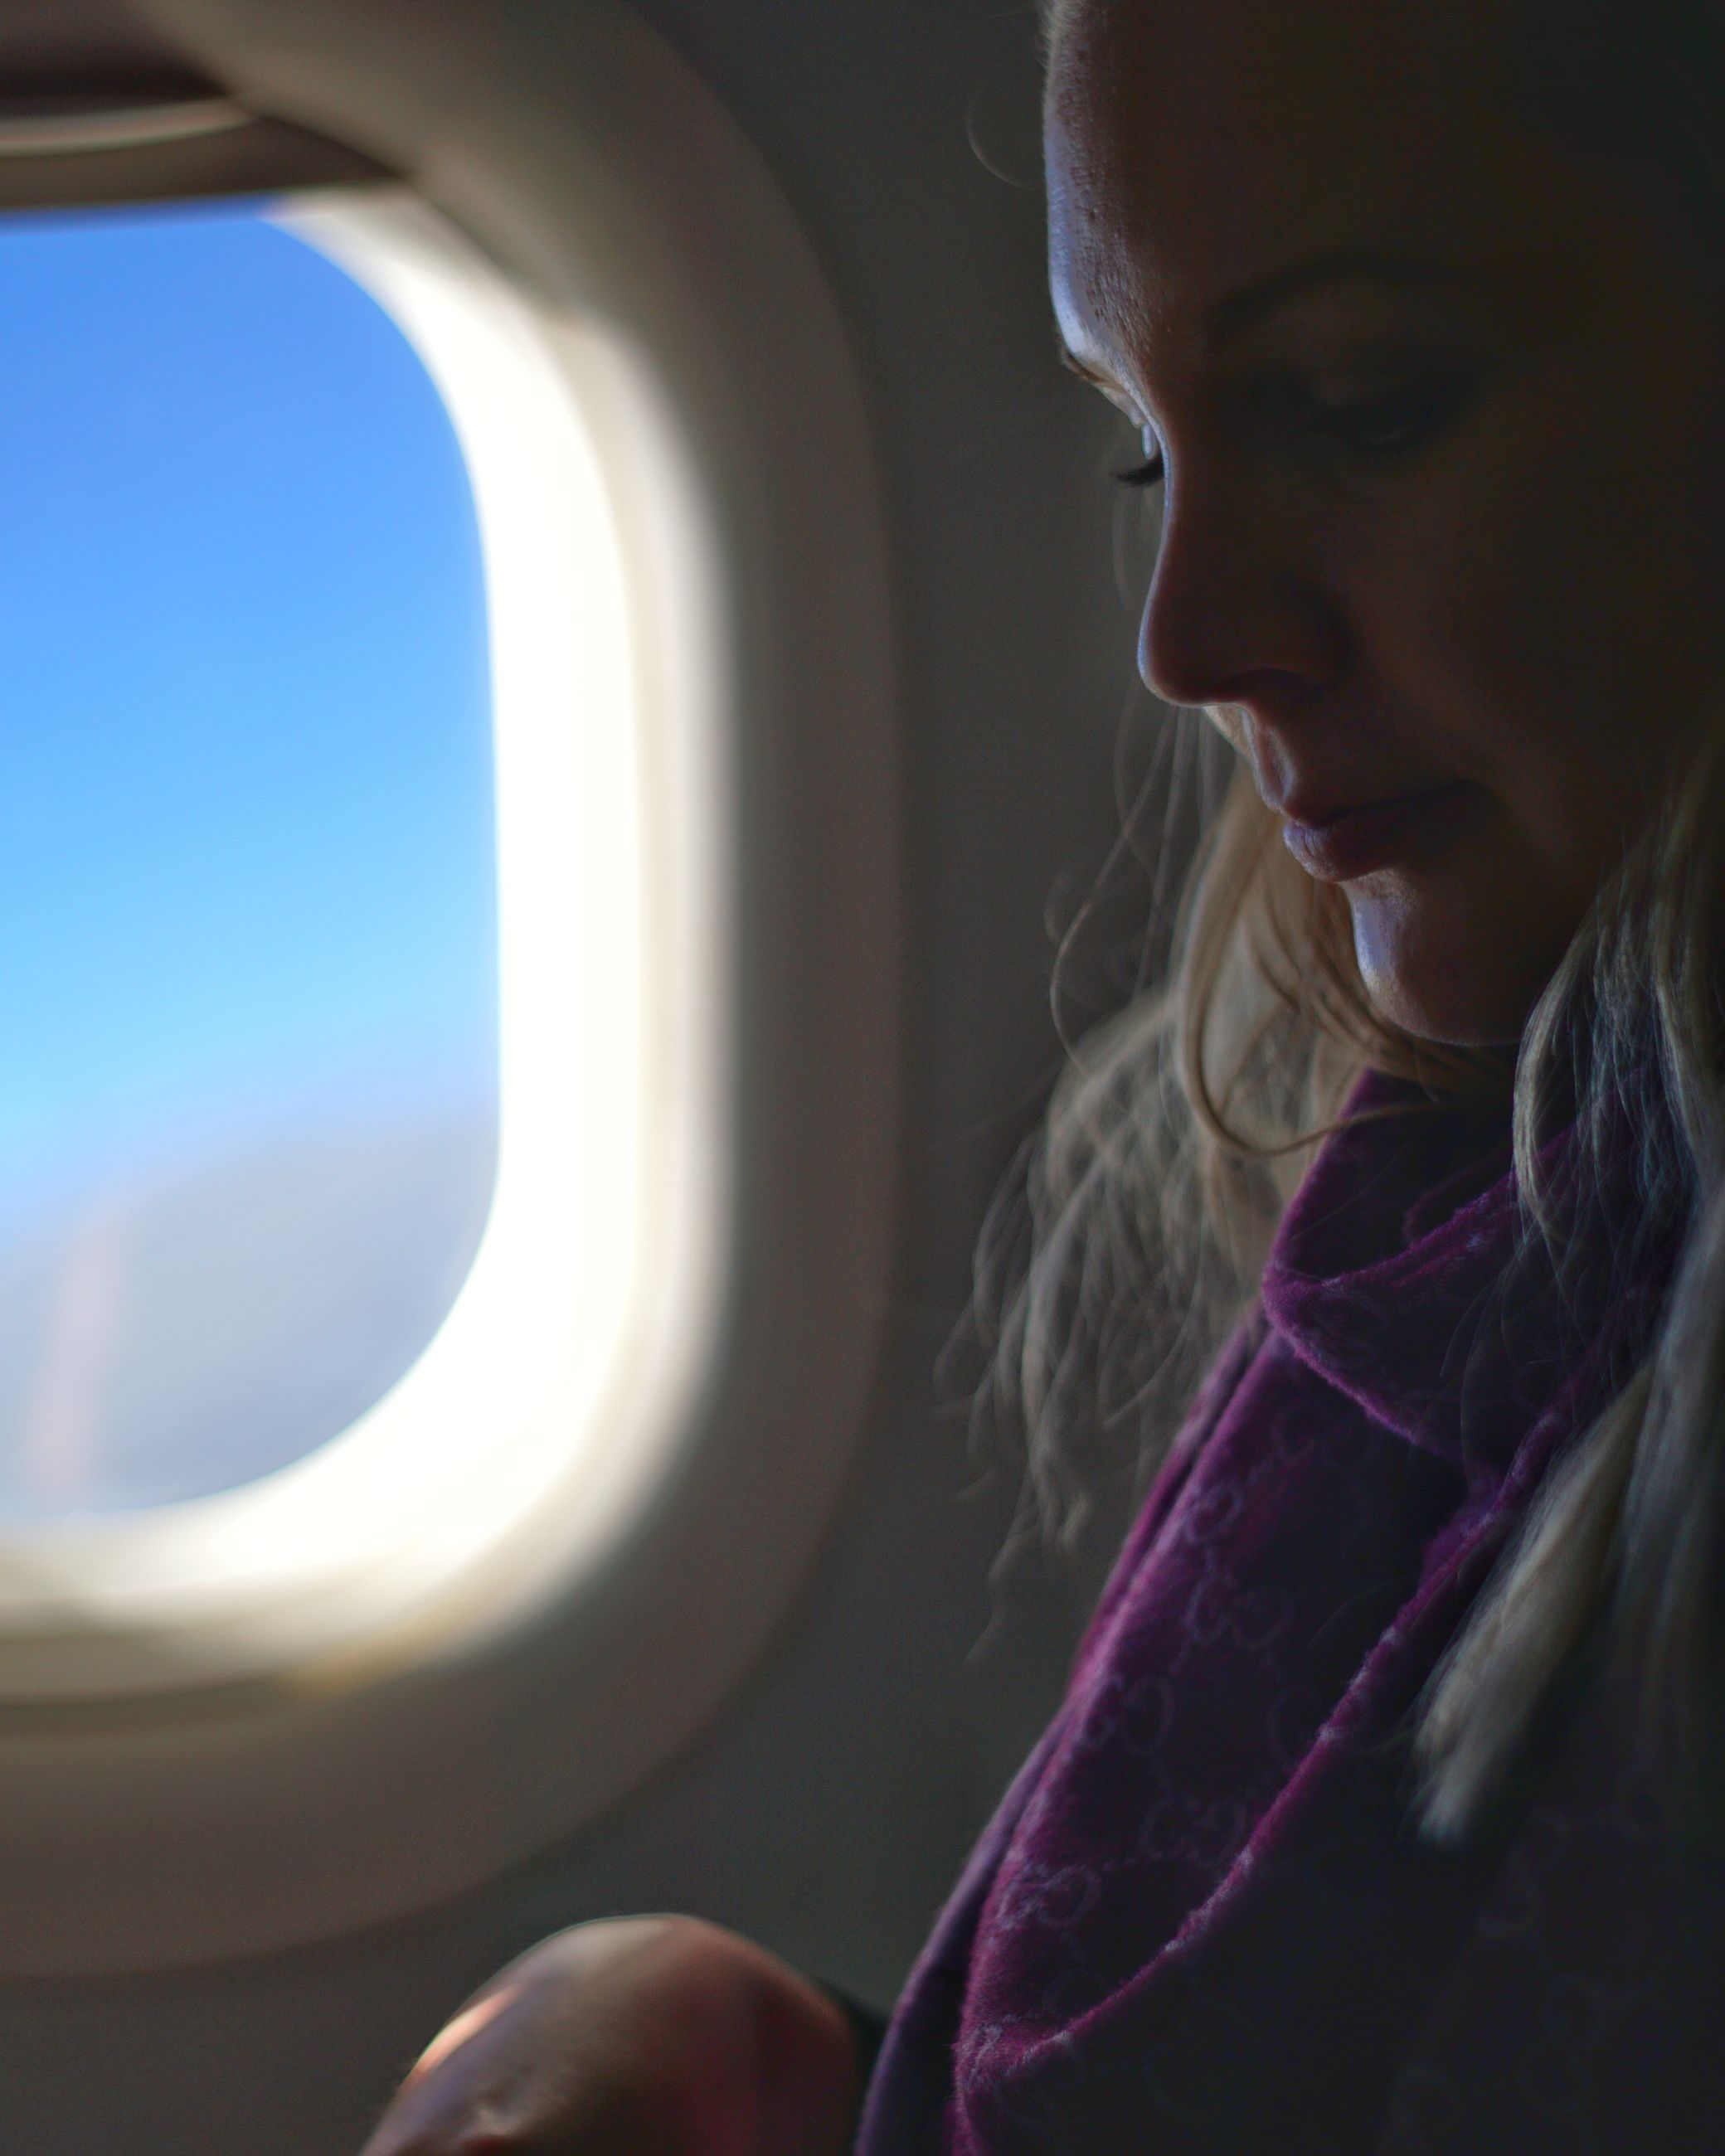 one person, window, looking, vehicle interior, real people, mode of transportation, lifestyles, headshot, air vehicle, young adult, travel, transportation, airplane, women, day, young women, sunlight, journey, outdoors, hairstyle